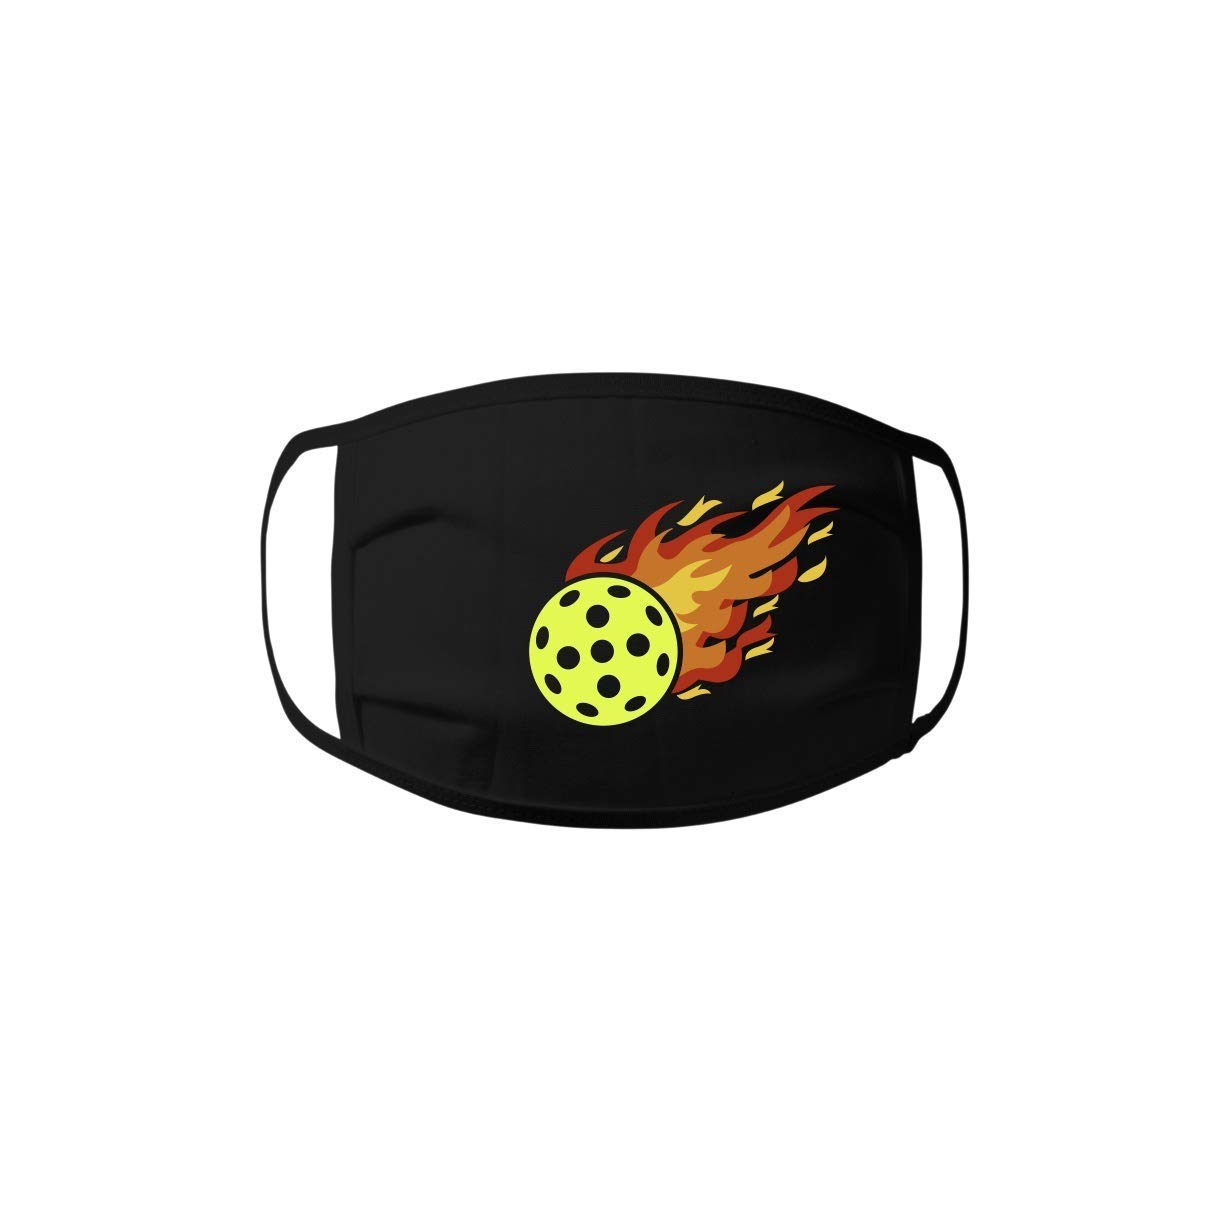 Face Mask - Import Pickleball Flame Store 100% Jersey Unis cotton